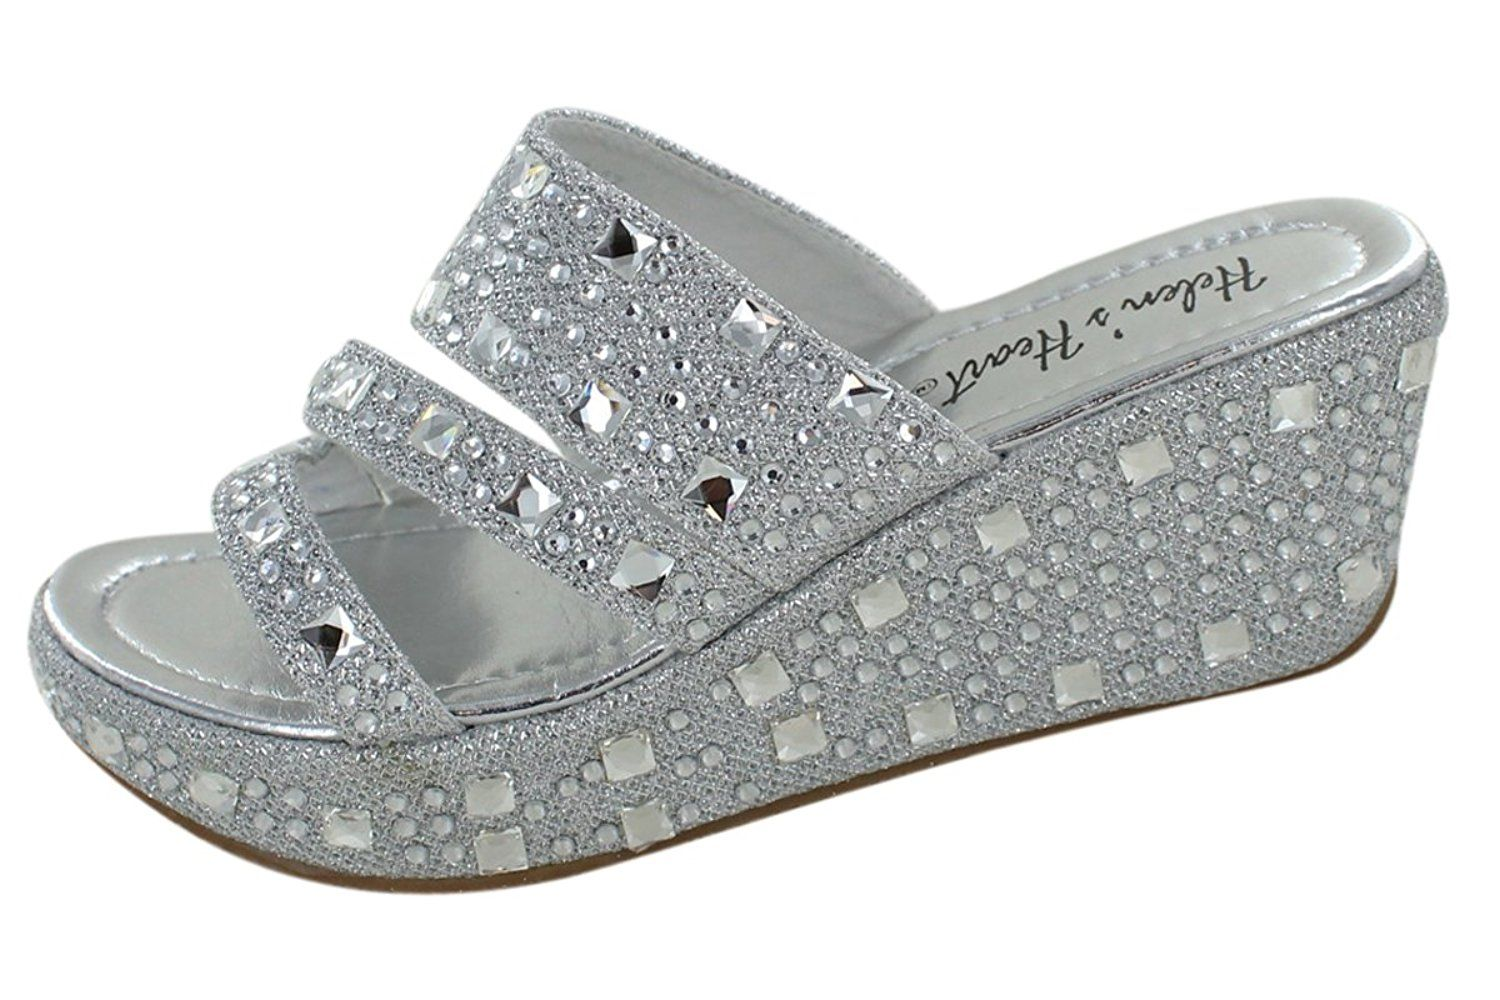 c87134acdc4 Women s Bling Sparkle Slide Wedge Sandal Gold Silver     Details can be  found by clicking on the image.